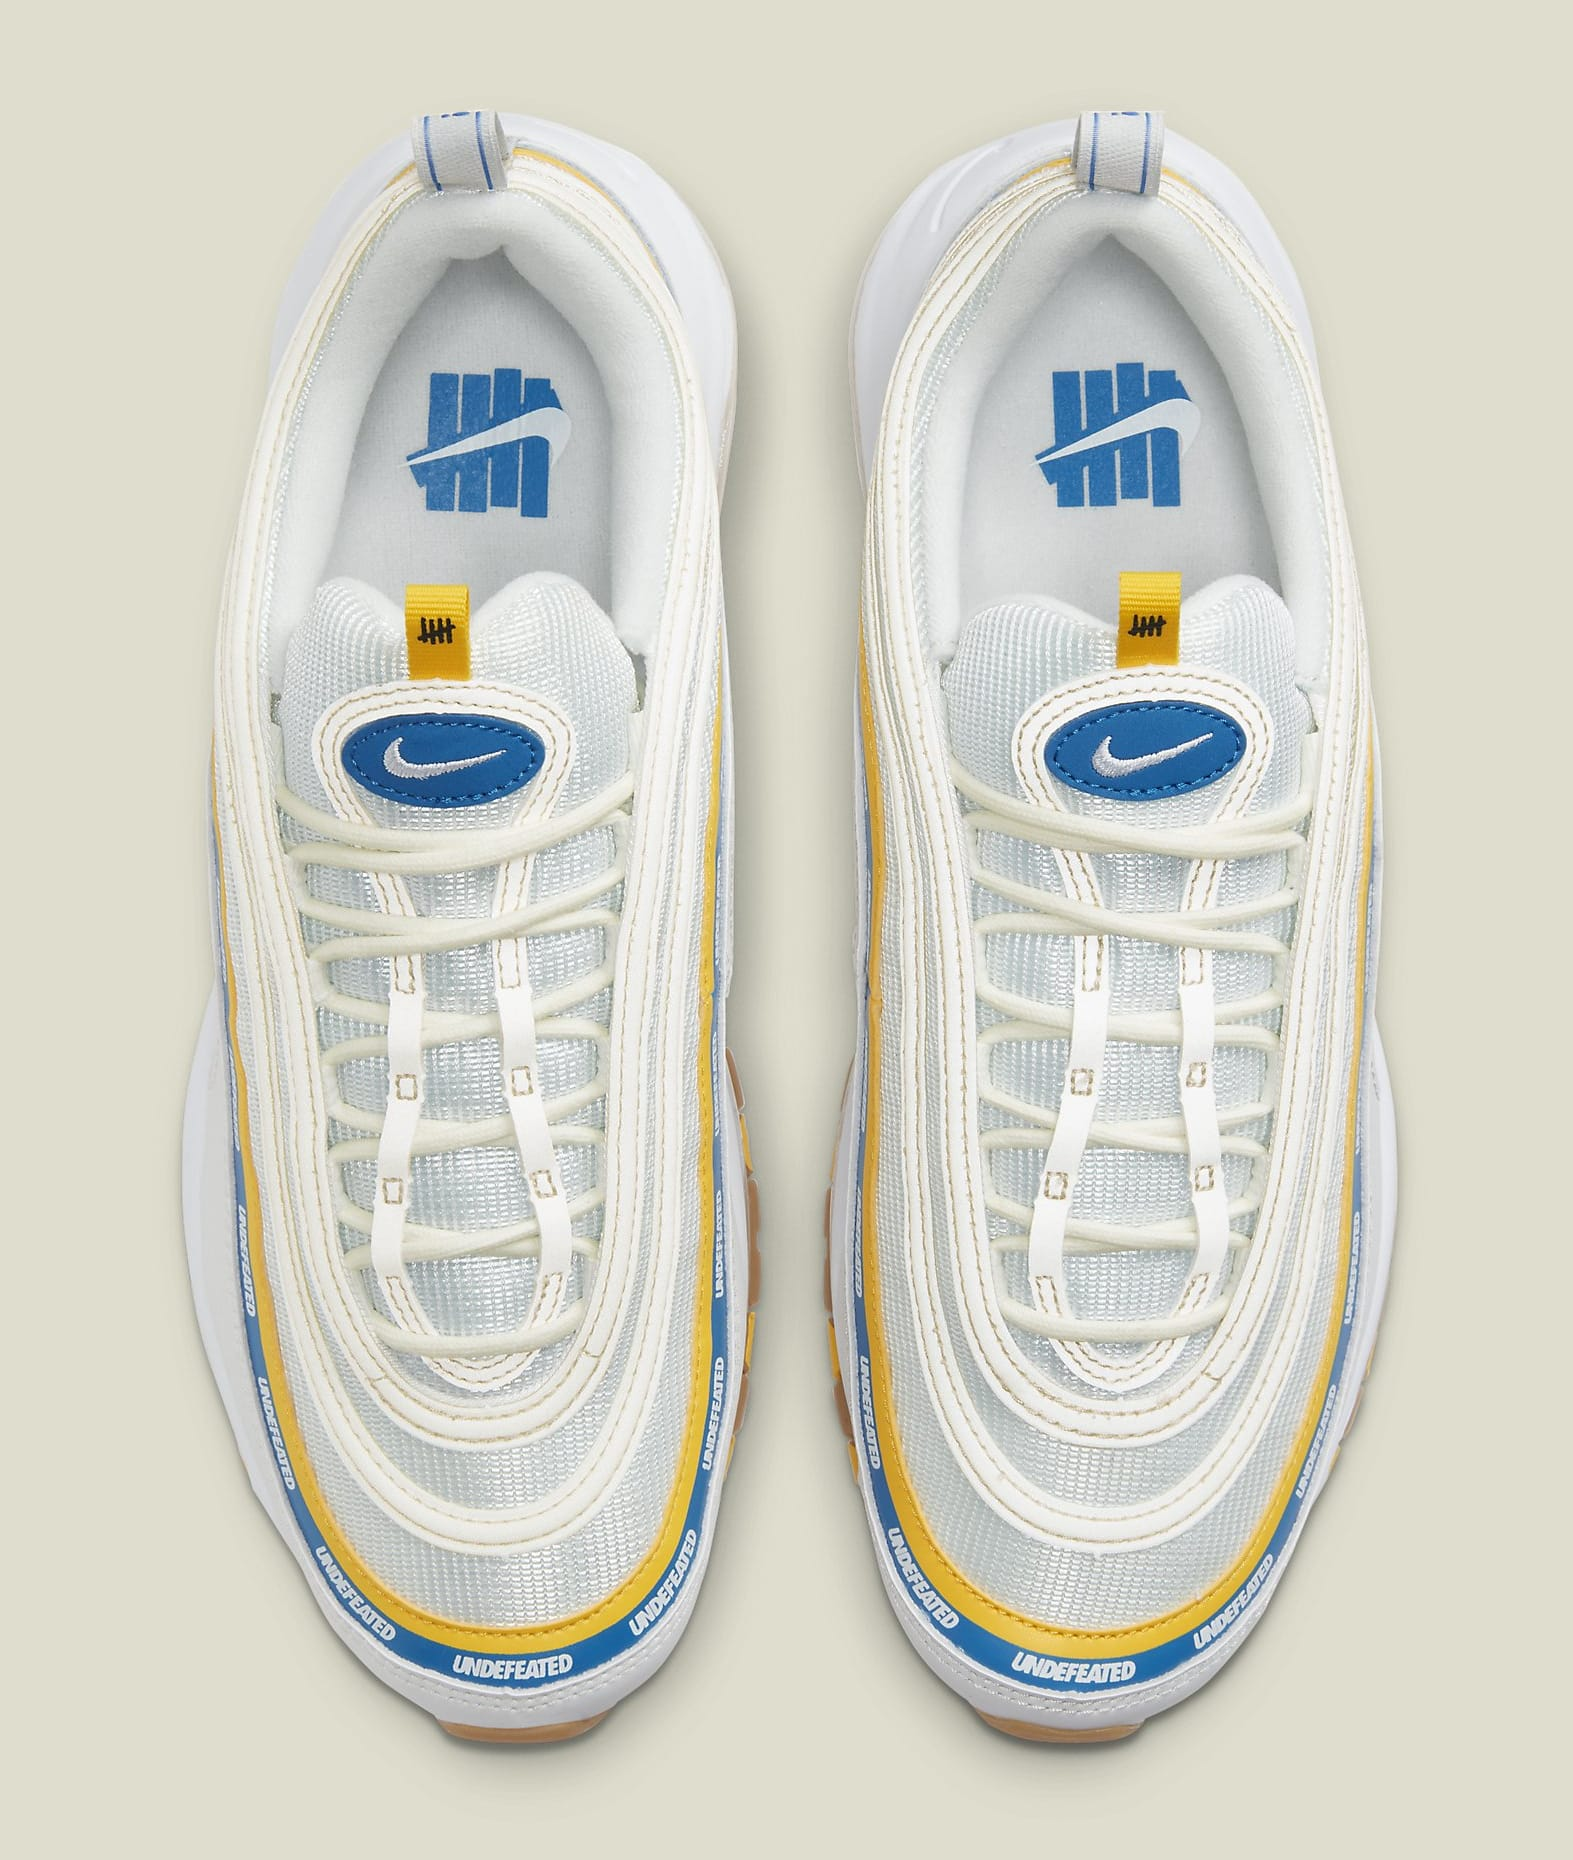 Undefeated x Nike Air Max 97 'Sail' DC4830-100 Top